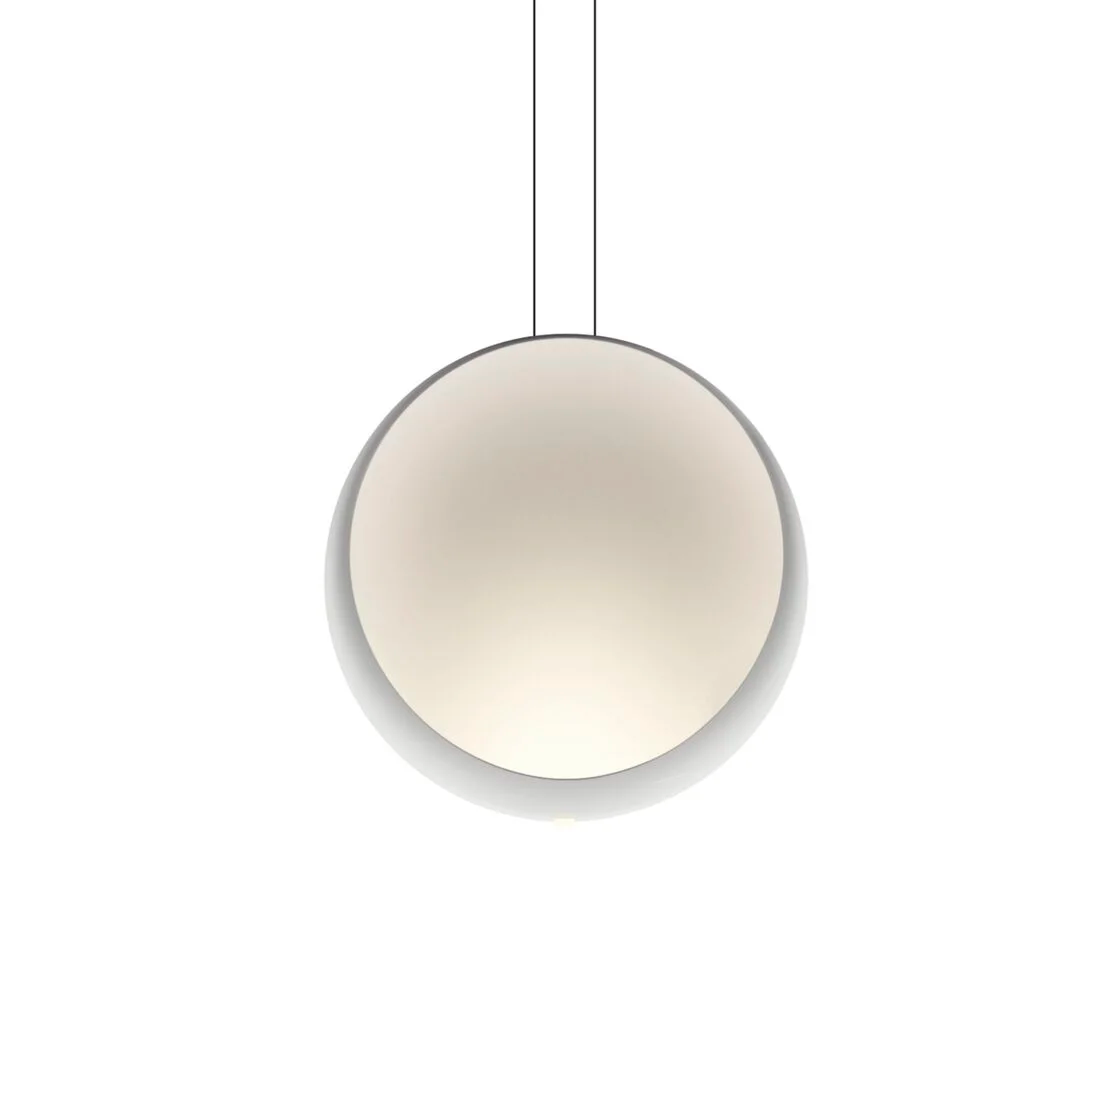 Vibia Cosmos - Asteya.by